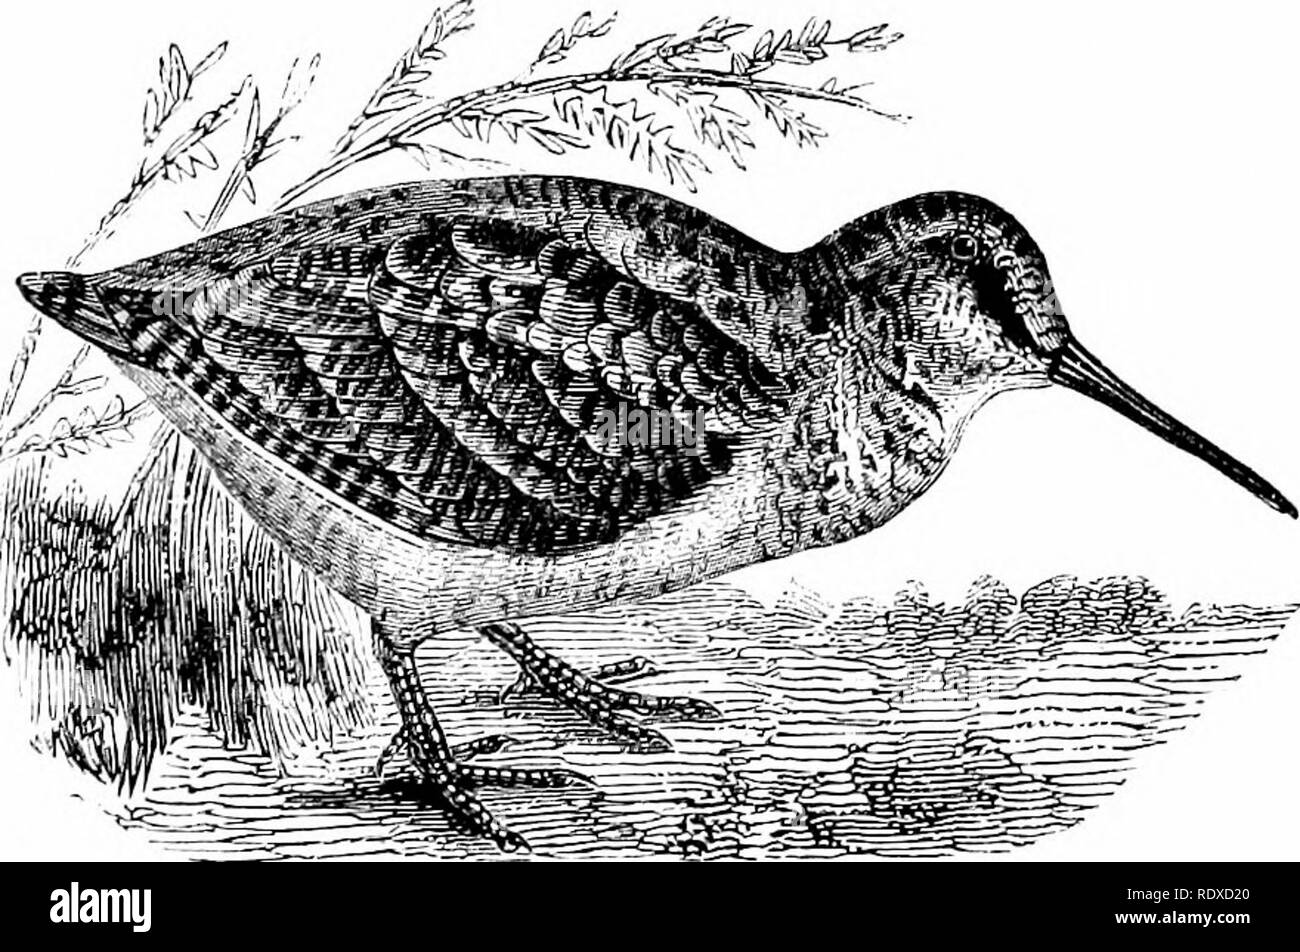 . Reptiles and birds : a popular account of their various orders : with a description of the habits and economy of the most interesting . Birds; Reptiles. THE WOODCOCK. 339 The Sanderlings {Calechis) and the Curlews {Numeniiis, Latham) are species closely allied to the Knots, but differing in their habits and physical characteristics. They visit all the coasts of Europe in small flocks, incessantly on the move. Even an abundance of food does not suffice to keep them very long in the same locality : motion seems the law of their existence. The Woodcock {Scolopax rusticola) has a very long, stra - Stock Image